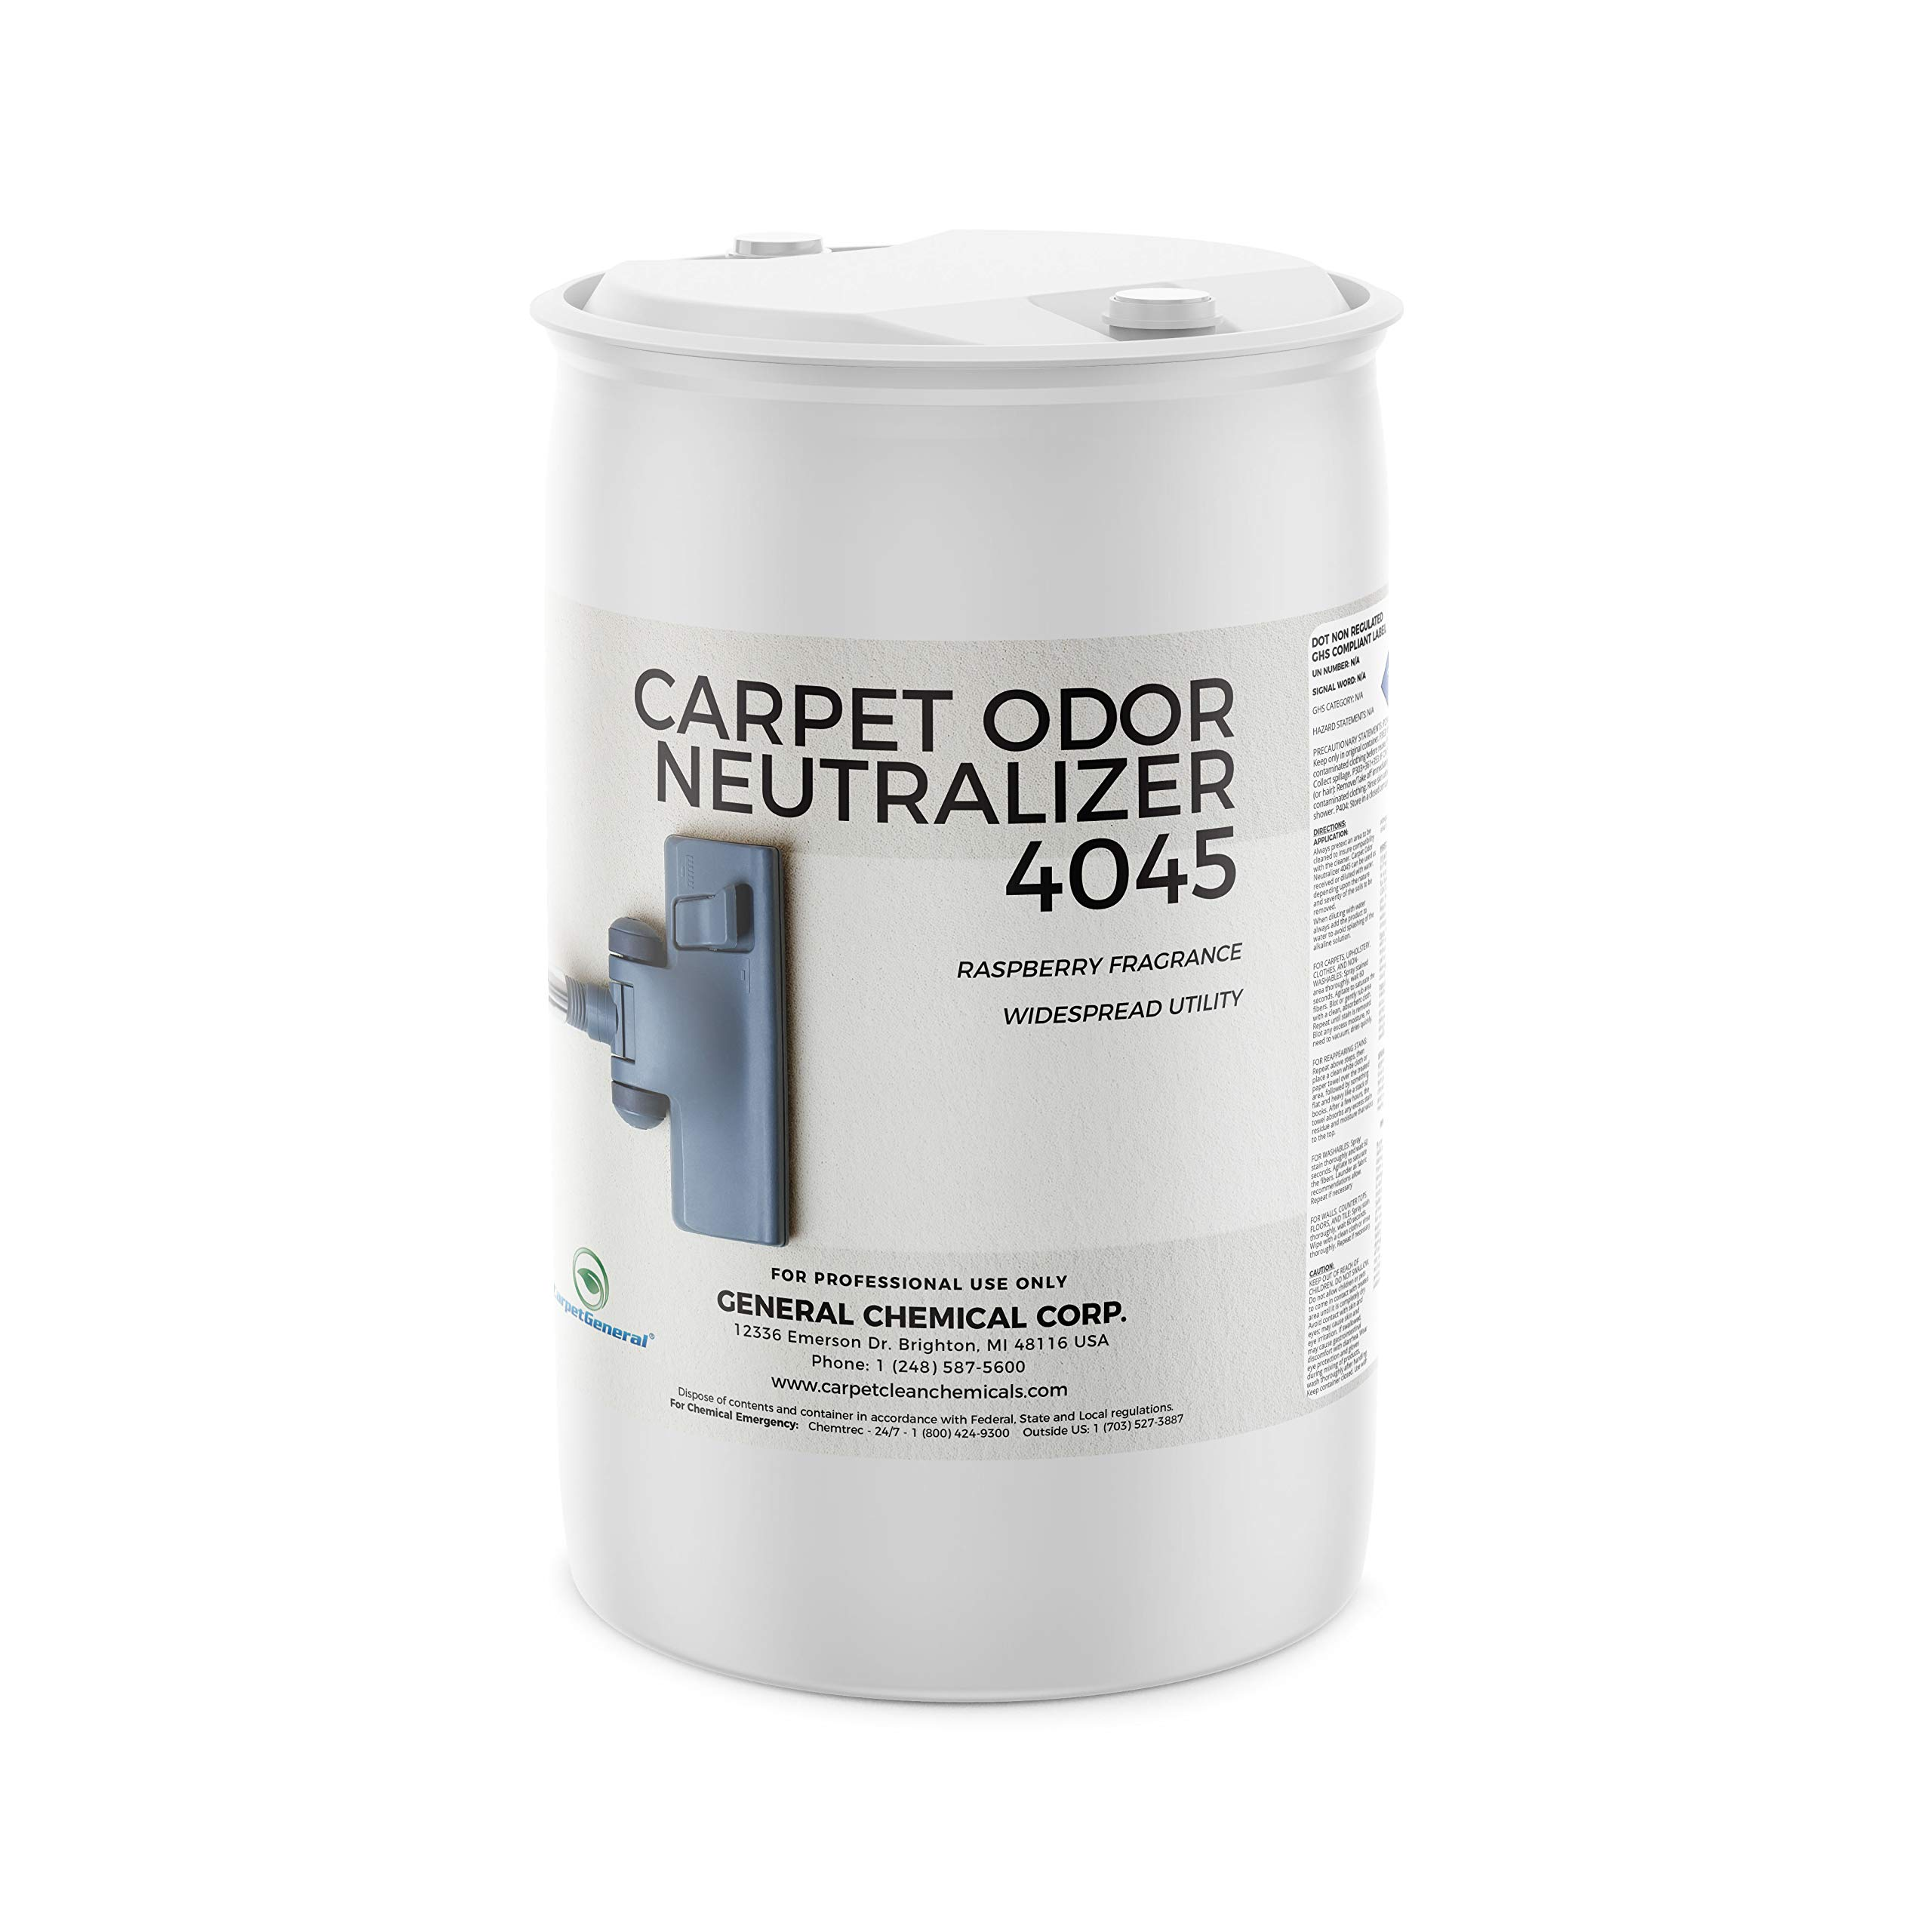 - Carpet Odor Neutralizer by CarpetGeneral | Deodorizer | Multi Surface | Water-Soluble | Residential & Commercial Use | Multi Purpose | Raspberry Scent | 55 Gallons